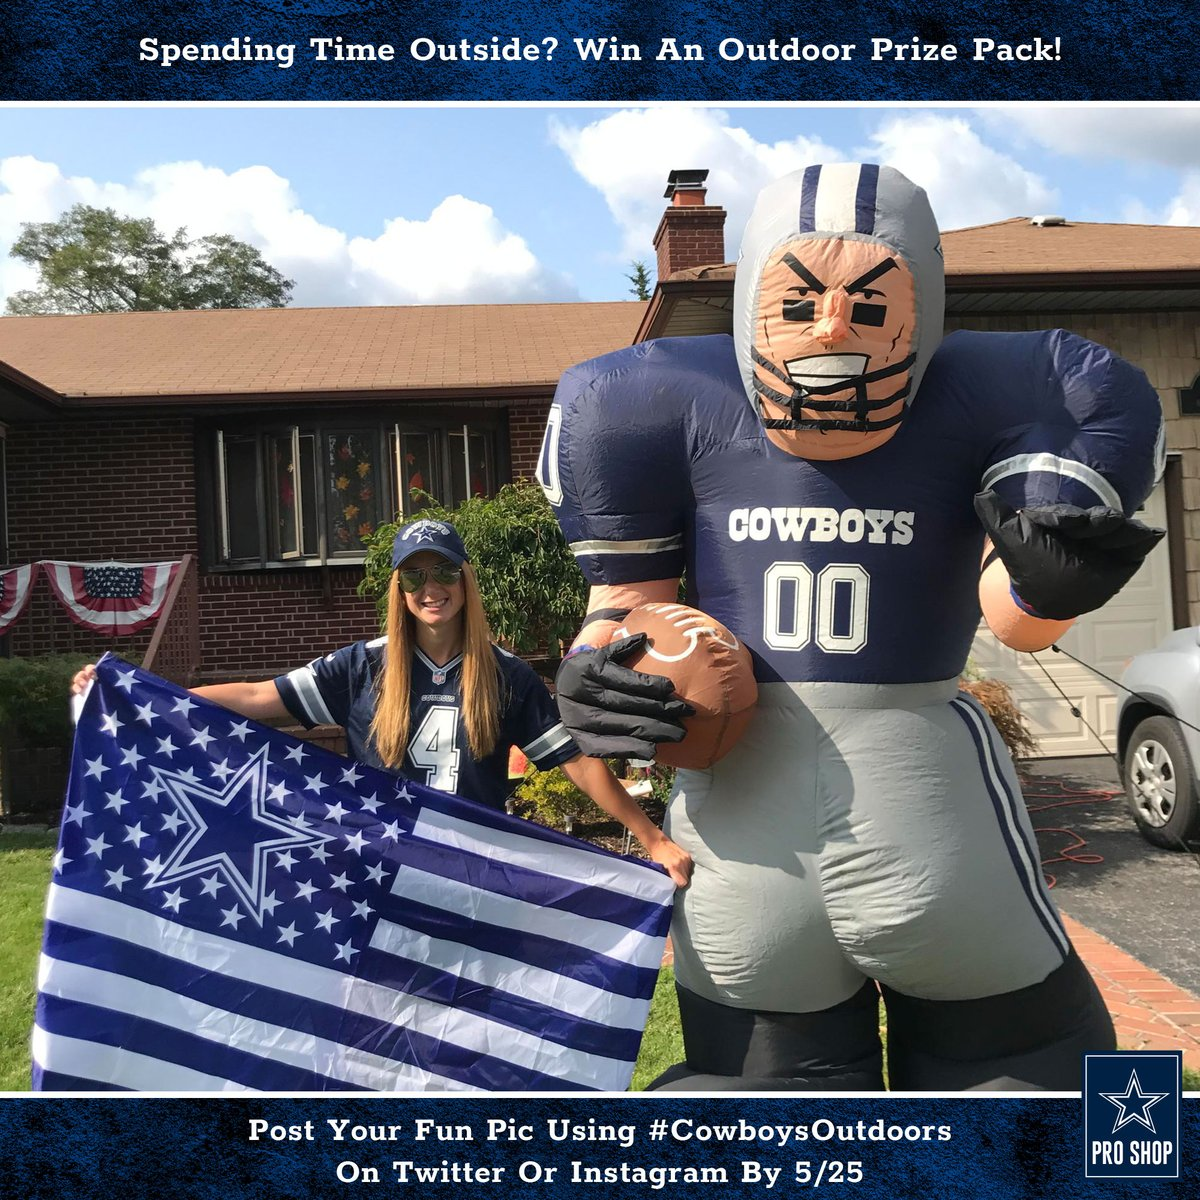 🚨 LAST CHANCE at our latest #DallasCowboys prize pack! 🚨  1. Follow us 2. Post a pic of your time spent outside in your #CowboysNation gear using #CowboysOutdoors 3. You could win a Pro Shop package of awesome outdoor gear!  Enter by midnight. Rules: https://t.co/7JX0xUFgq5 https://t.co/OACacOpKzD